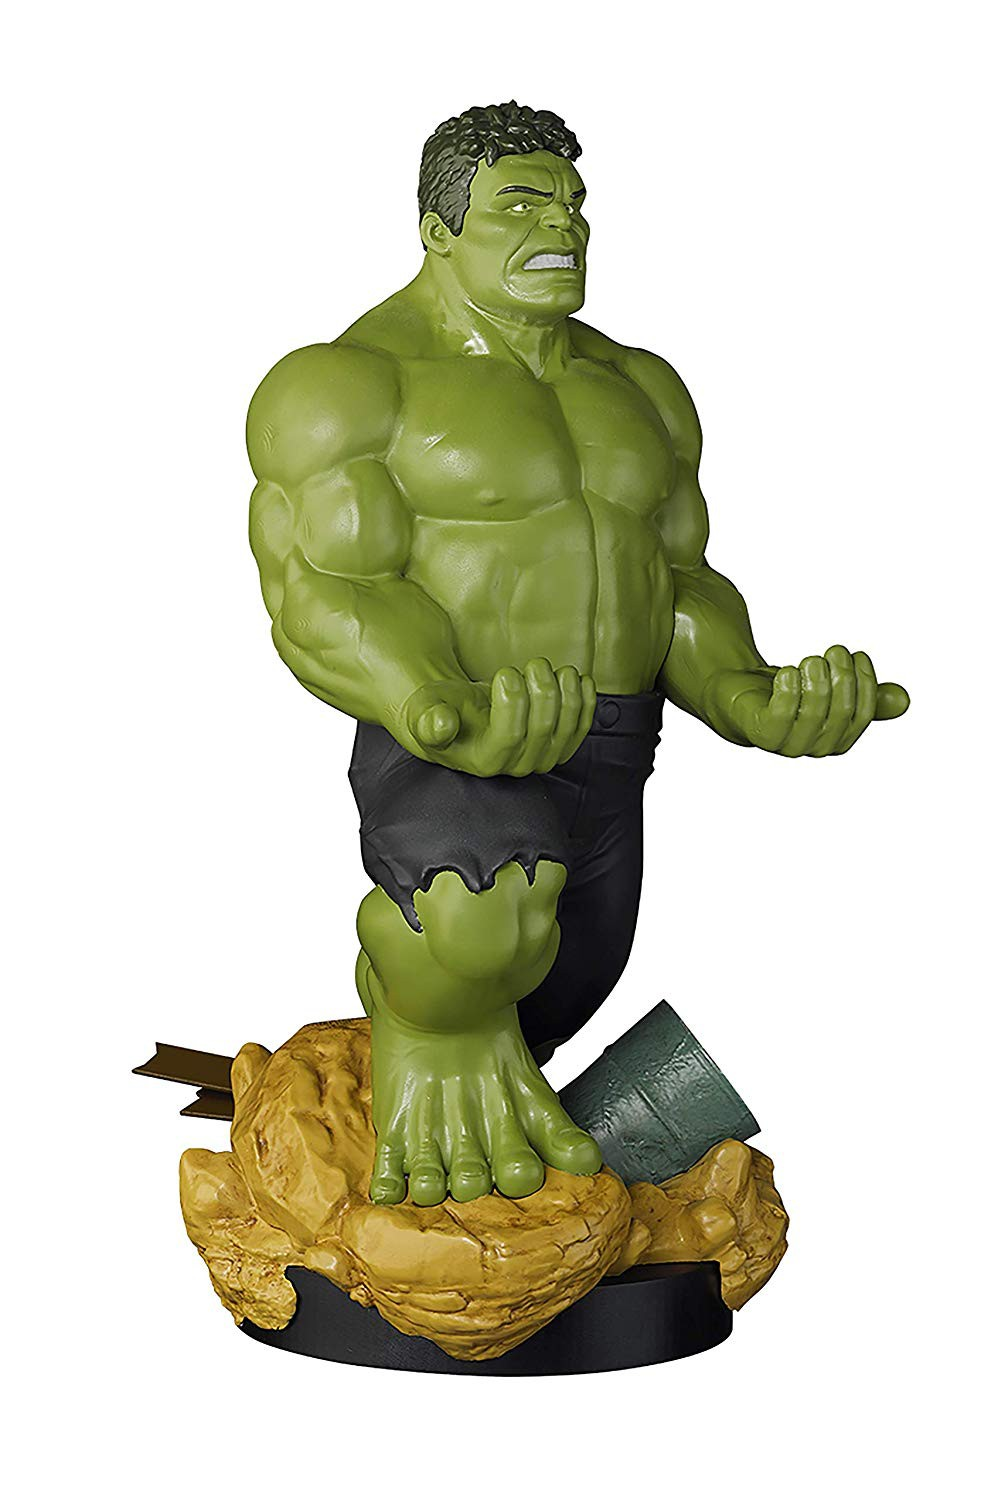 MARVEL HULK Cable Guy (XL) stand